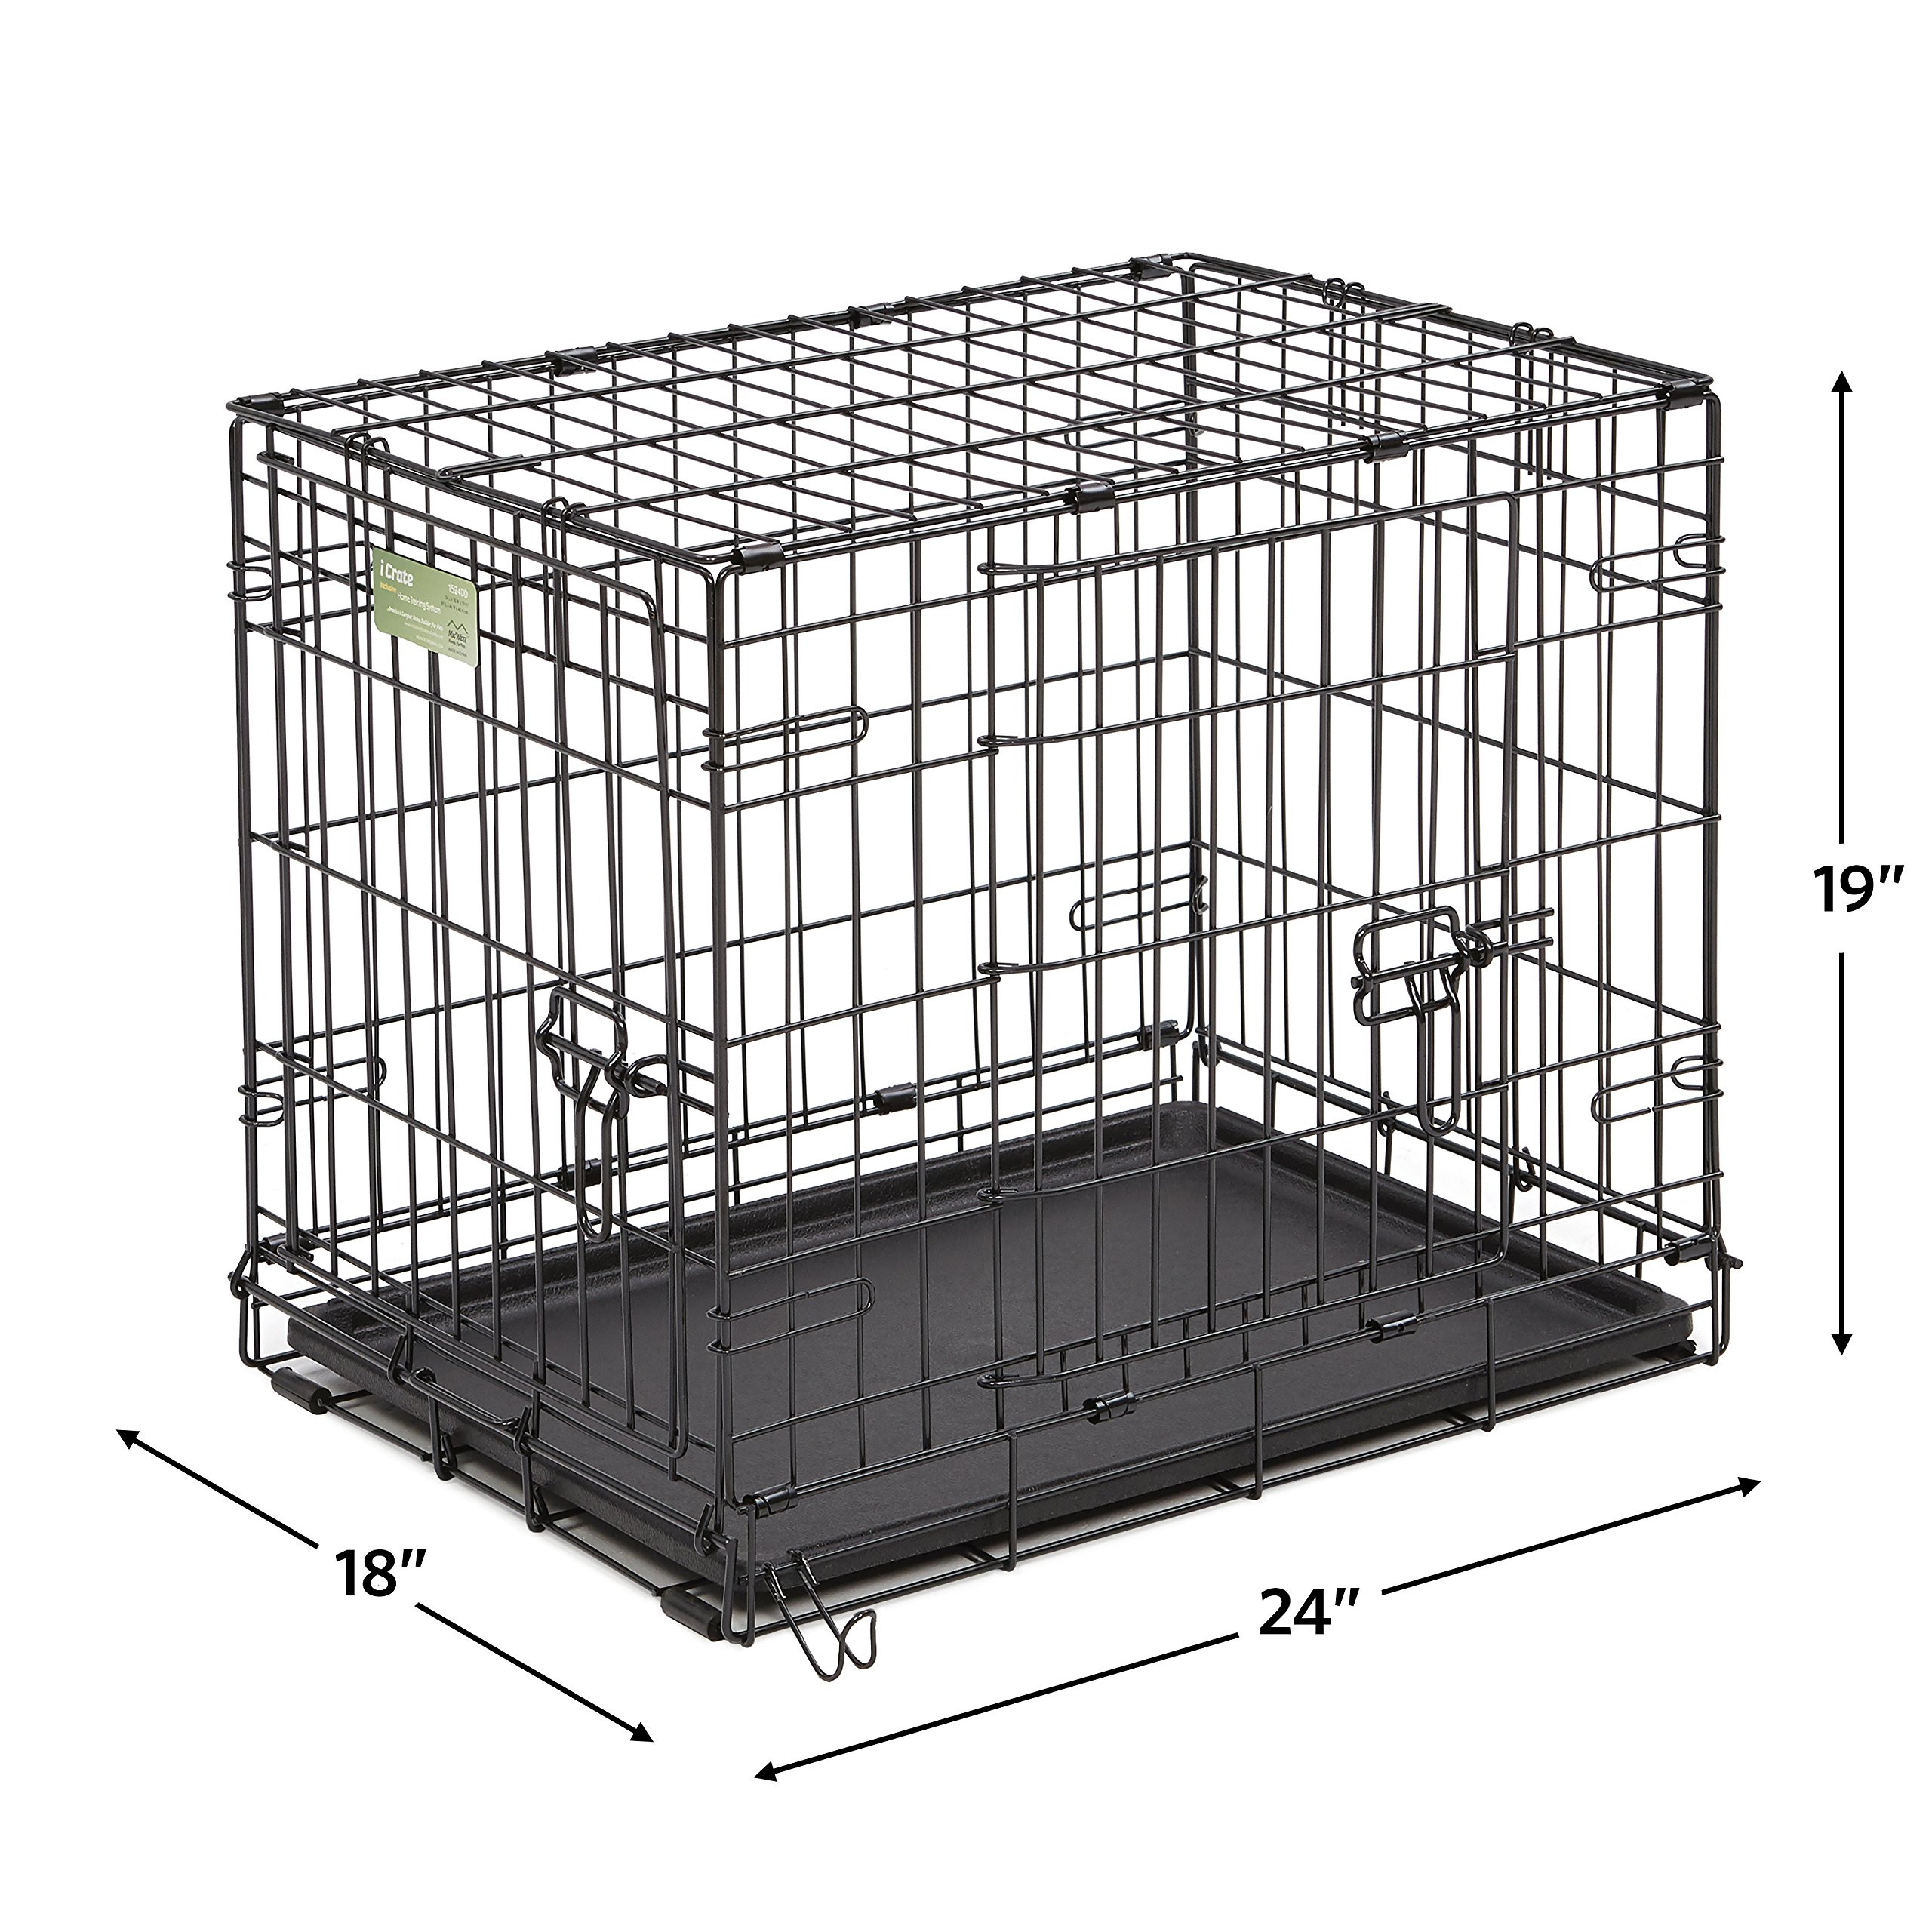 MidWest Homes for Pets Small Dog Crate Starter Kit | One 2-Door iCrate, Pet Bed, Crate Cover & 2 Pet Bowls | 24-Inch Ideal for Small Dog Breeds by MidWest Homes for Pets (Image #5)